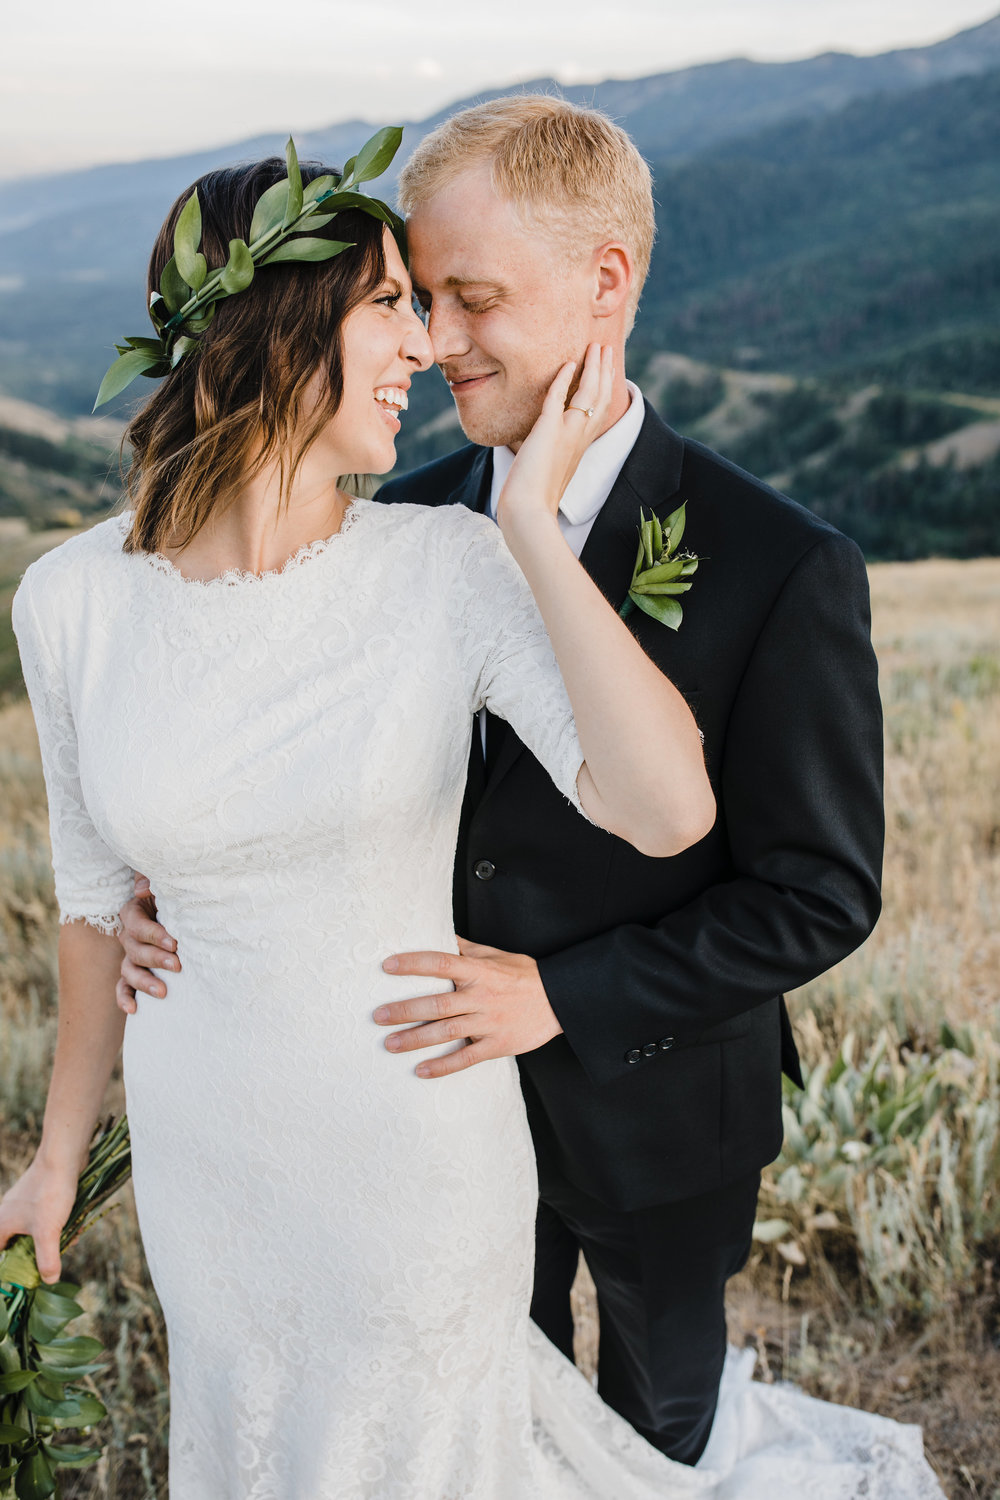 wedding photographer in brigham city utah bridals smiling kissing hugging happy romantic